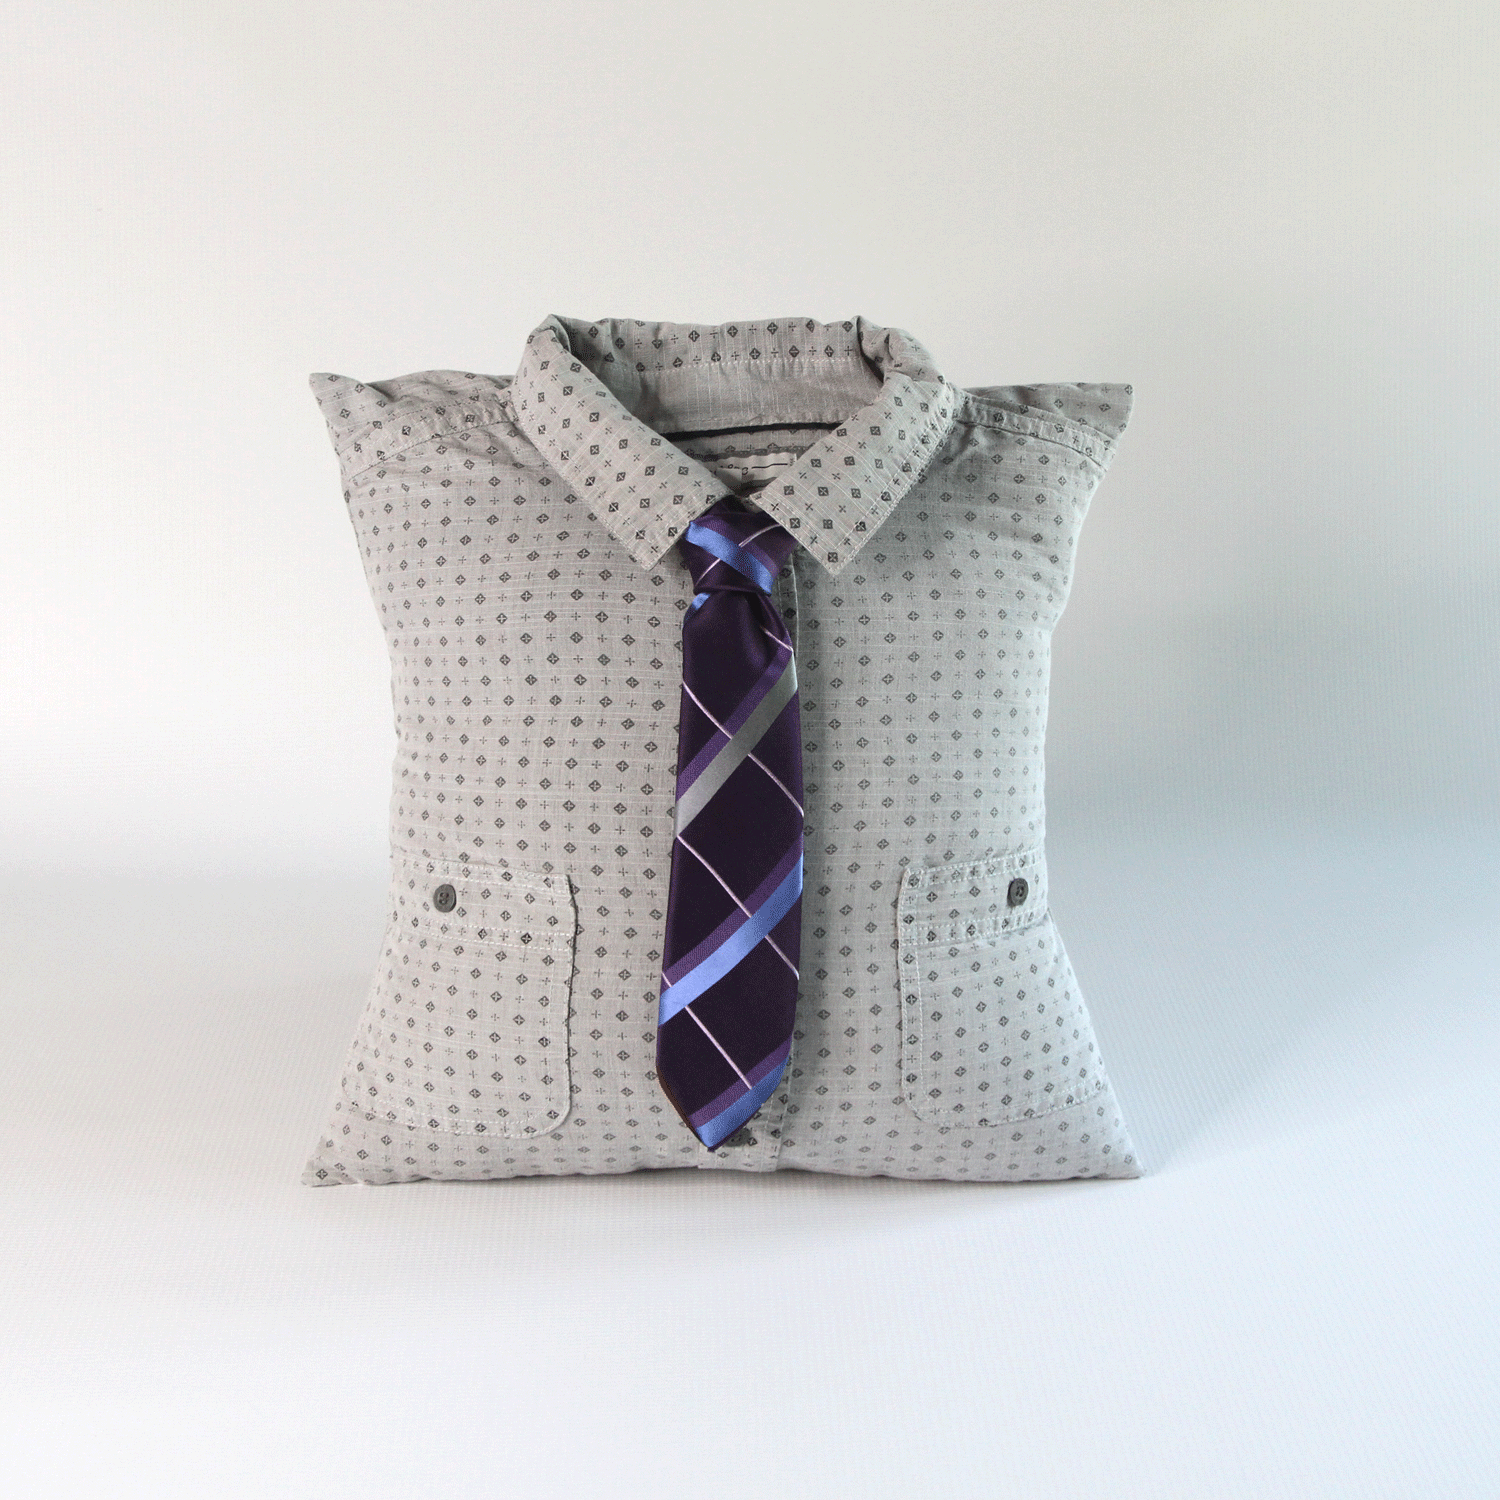 Memorial Pillow from clothing of loved one